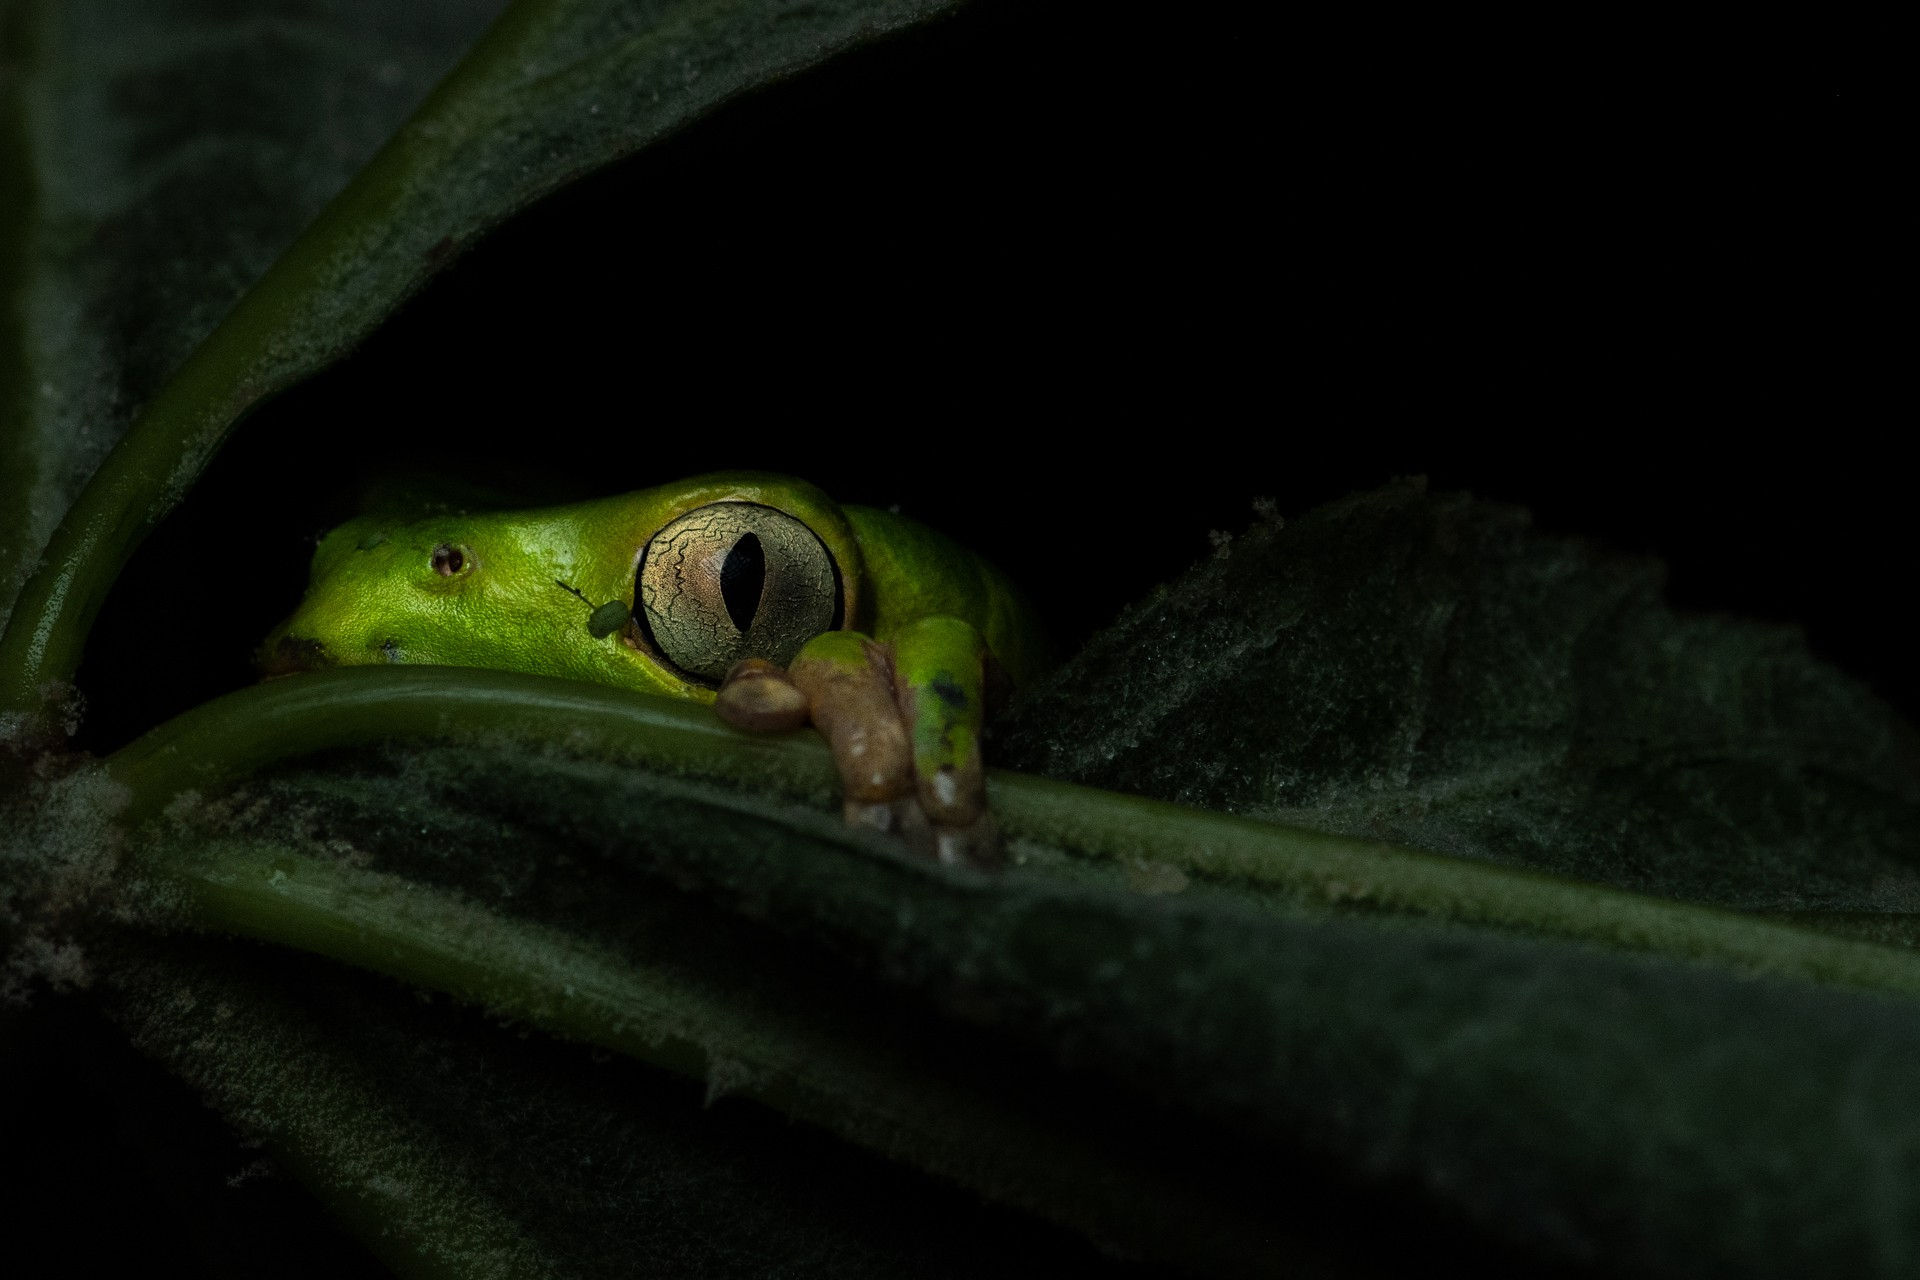 Close-up of a tree frog in Argentina.